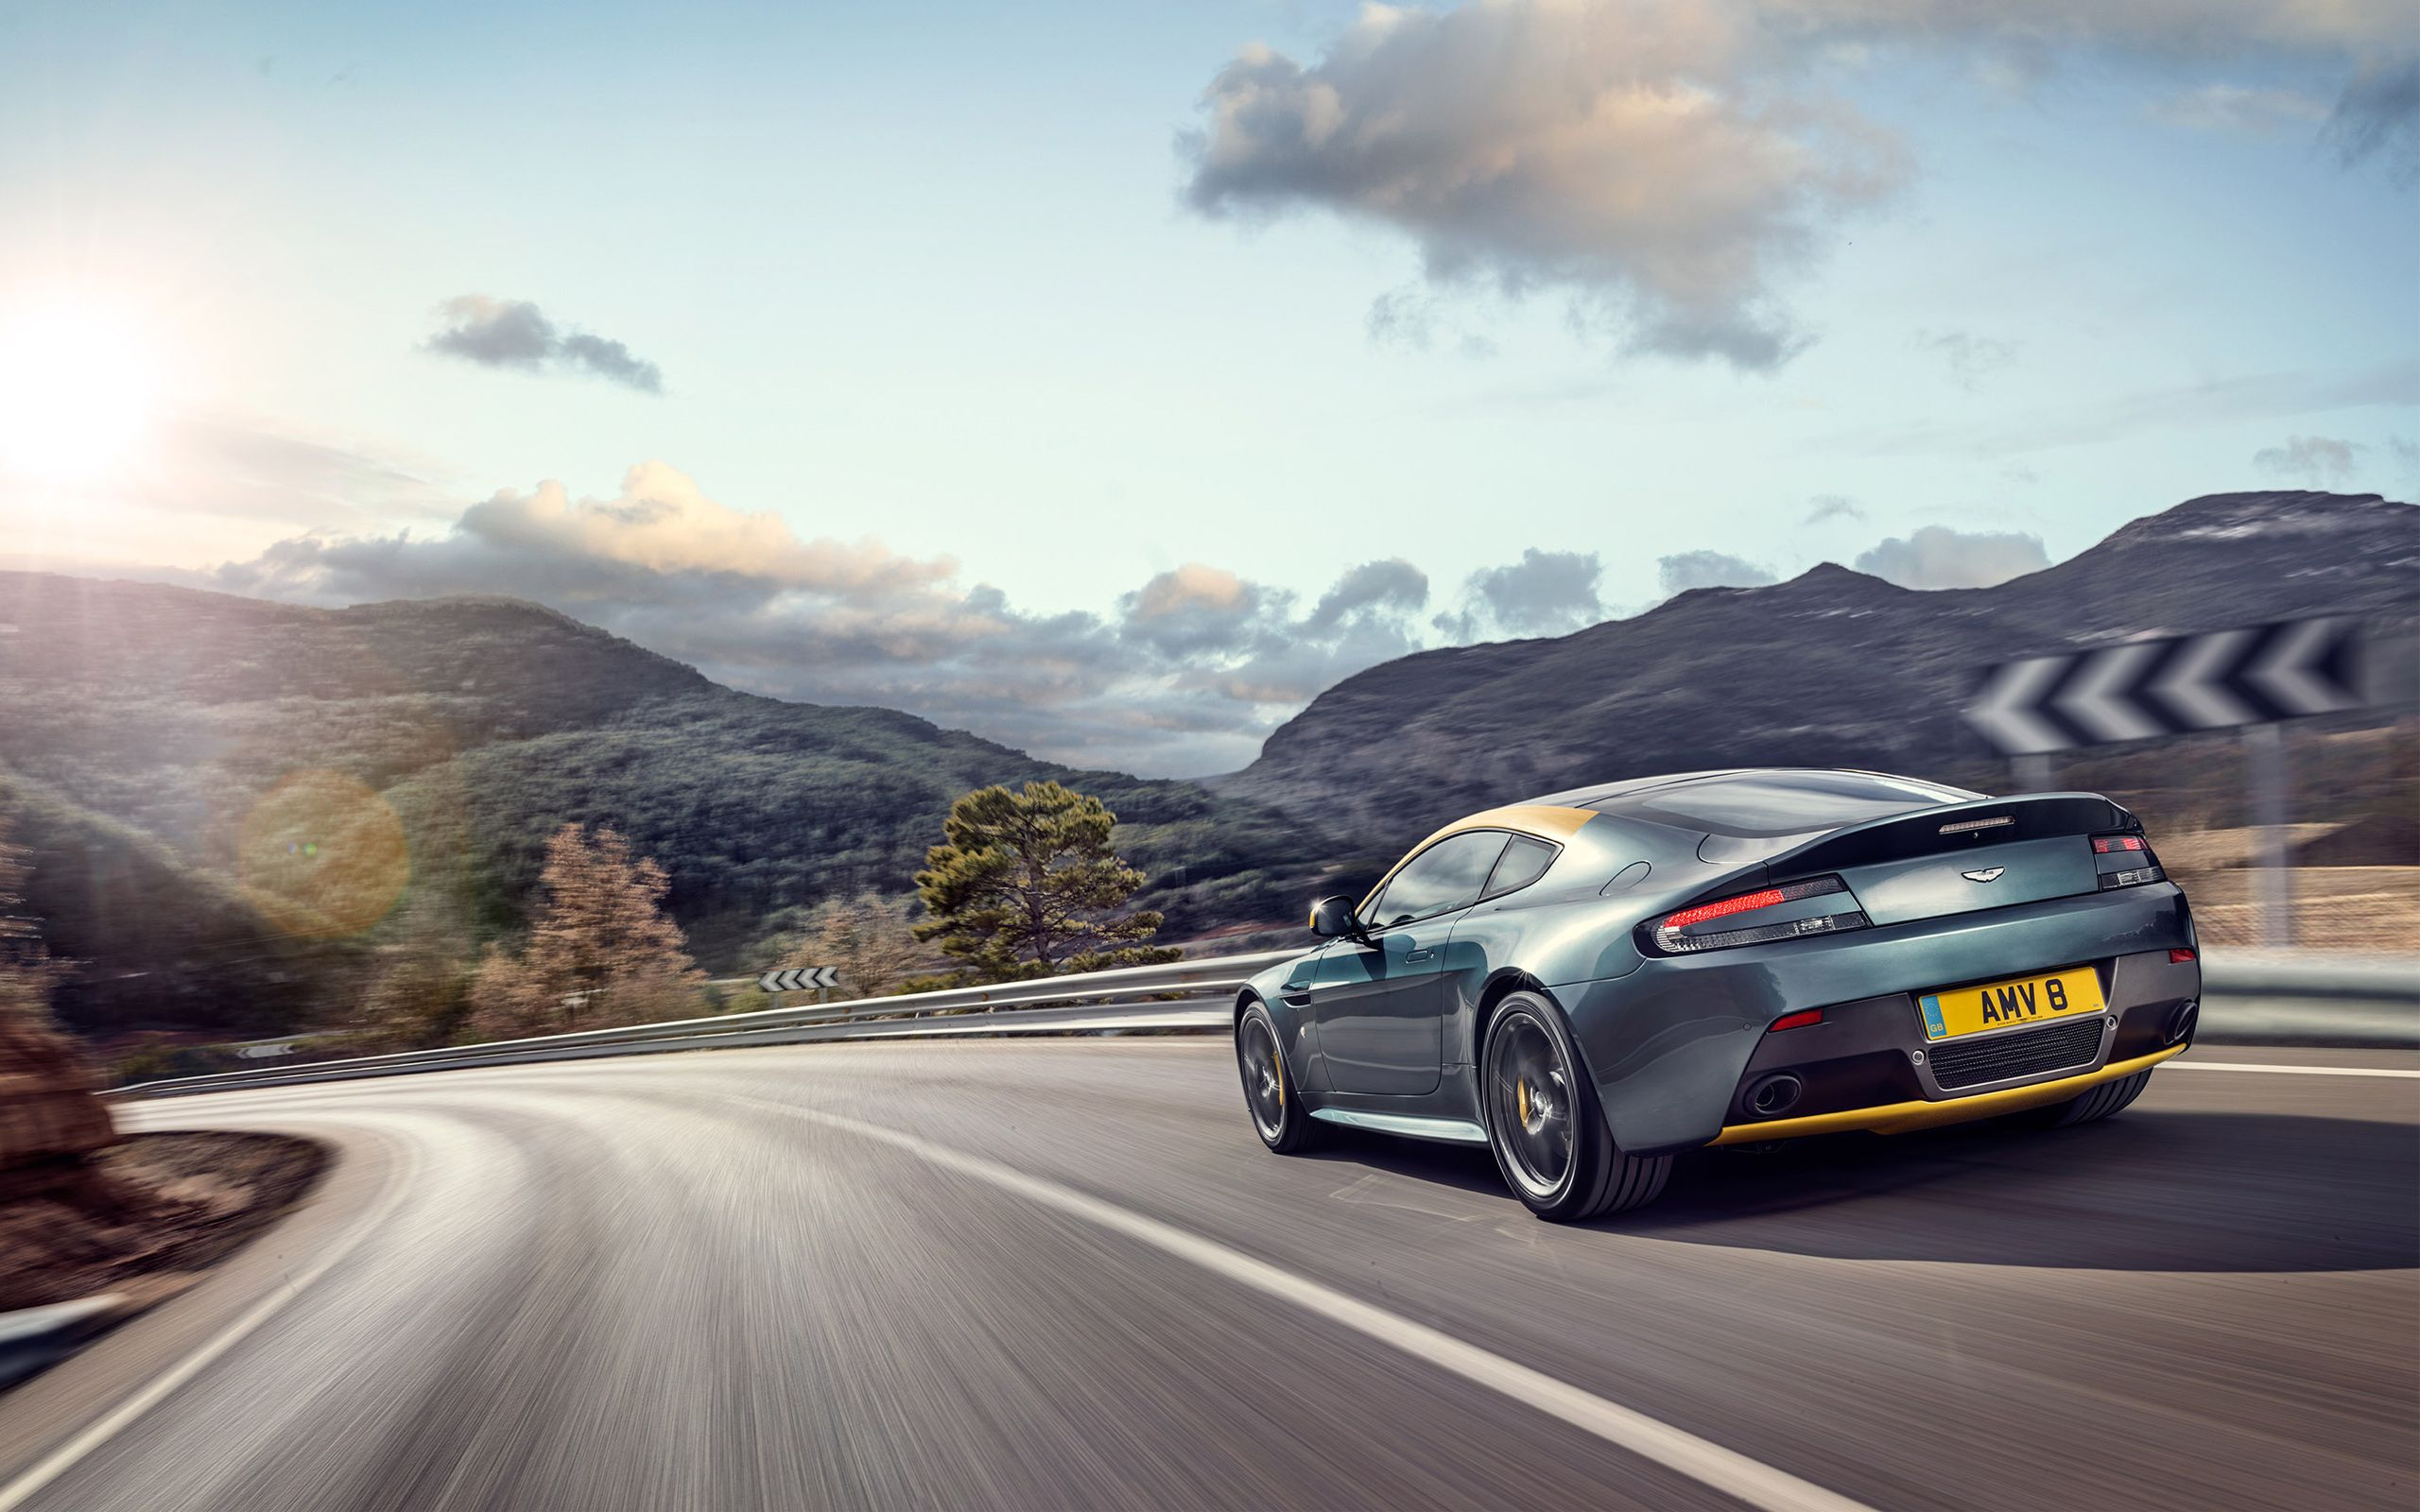 High Resolution Wallpapers Widescreen 2015 Aston Martin V8 Vantage N430 |  Hueputalo | Pinterest | Aston Martin V8 And High Resolution Wallpapers